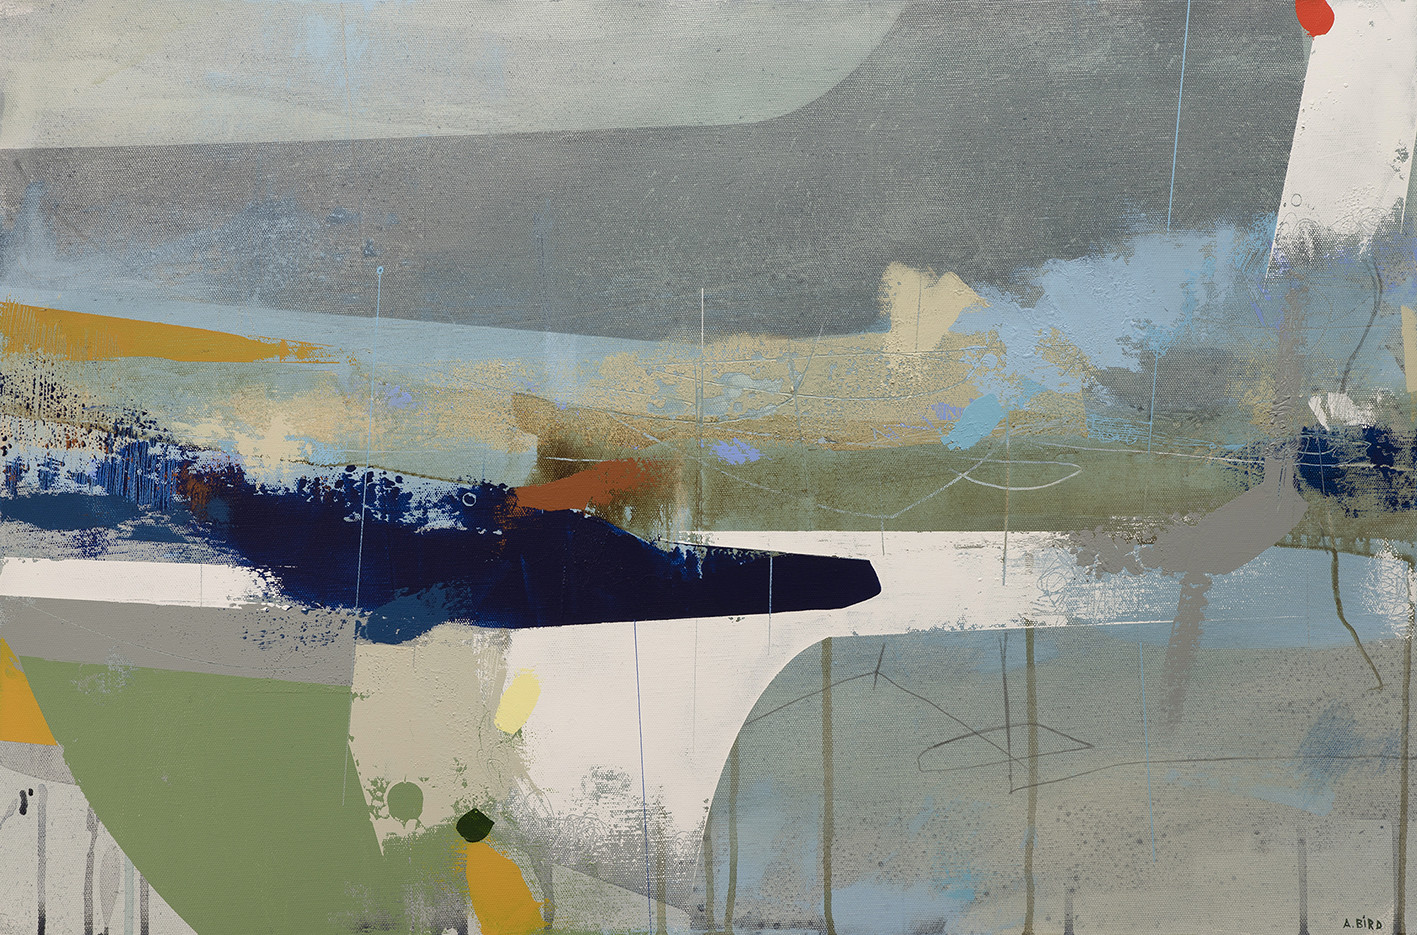 """<span class=""""link fancybox-details-link""""><a href=""""/artists/77-andrew-bird/works/6198-andrew-bird-inconstant-2019/"""">View Detail Page</a></span><div class=""""artist""""><strong>Andrew Bird</strong></div> <div class=""""title""""><em>Inconstant</em>, 2019</div> <div class=""""signed_and_dated"""">signed, titled and dated on reverse</div> <div class=""""medium"""">acrylic on canvas</div> <div class=""""dimensions"""">h 50.5 x w 76.5 cm<br /> 19 7/8 x 30 1/8 in</div><div class=""""price"""">£1,600.00</div><div class=""""copyright_line"""">Own Art: £ 160 x 10 Months, 0% APR</div>"""